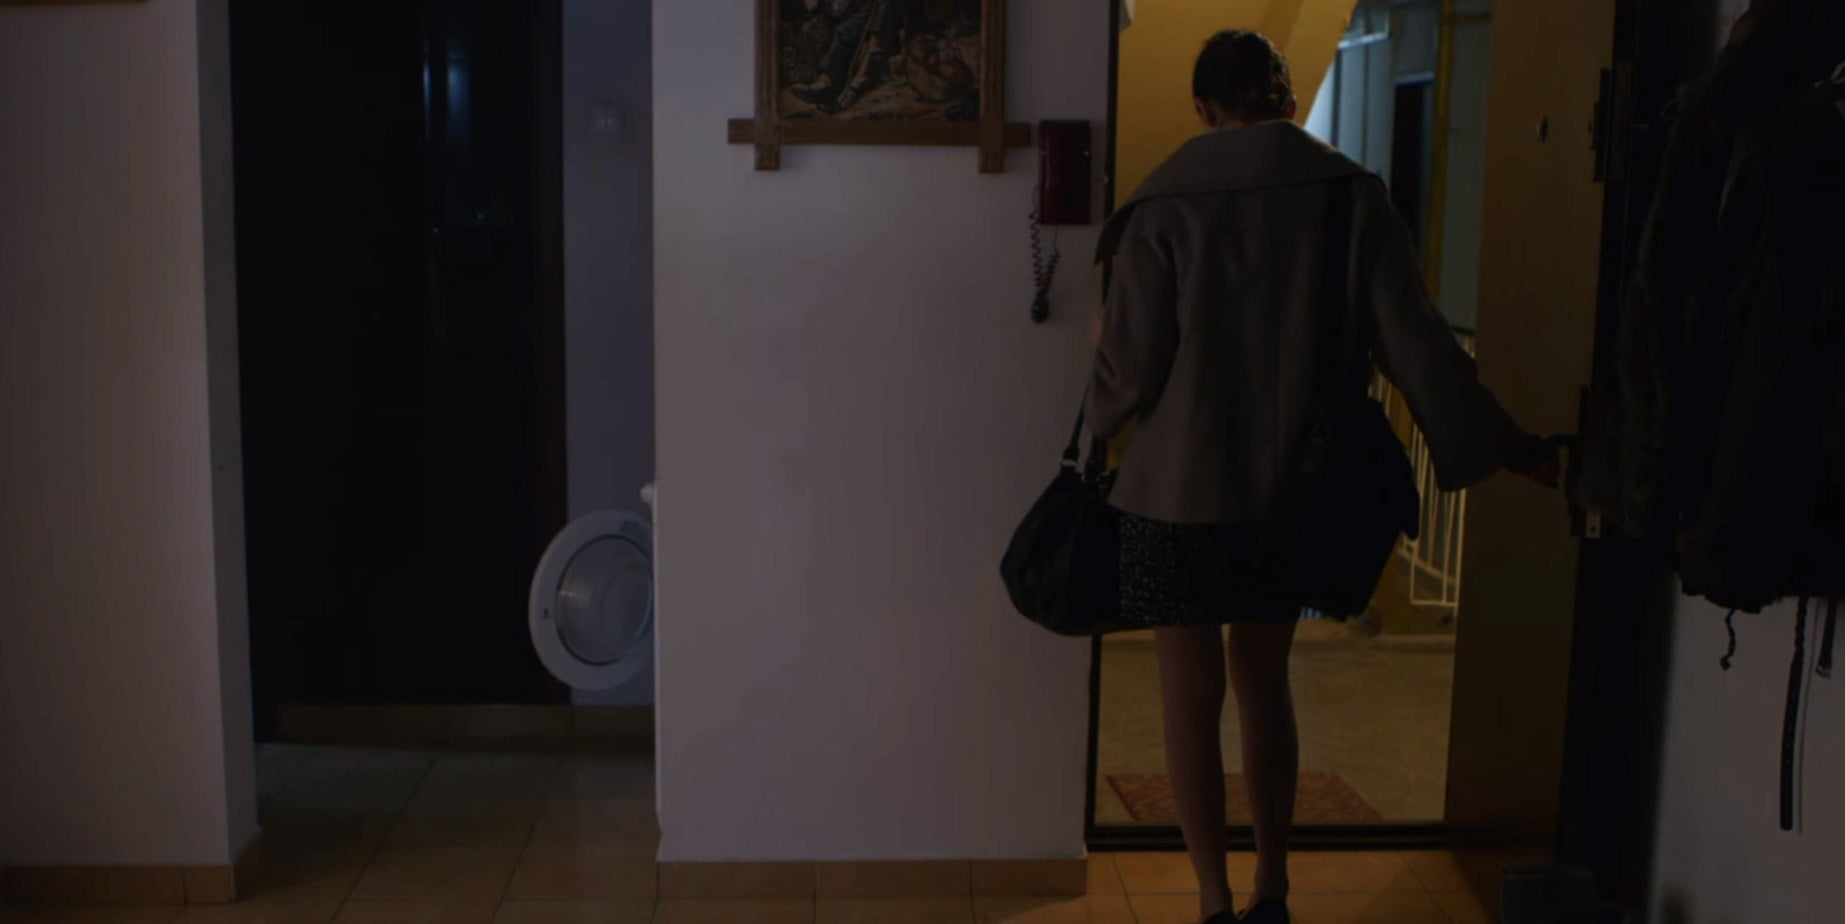 In Which the Protagonist Hides and Then Has an Unexpected Encounter by Tudor Cristian Jurgiu - CINEPUB